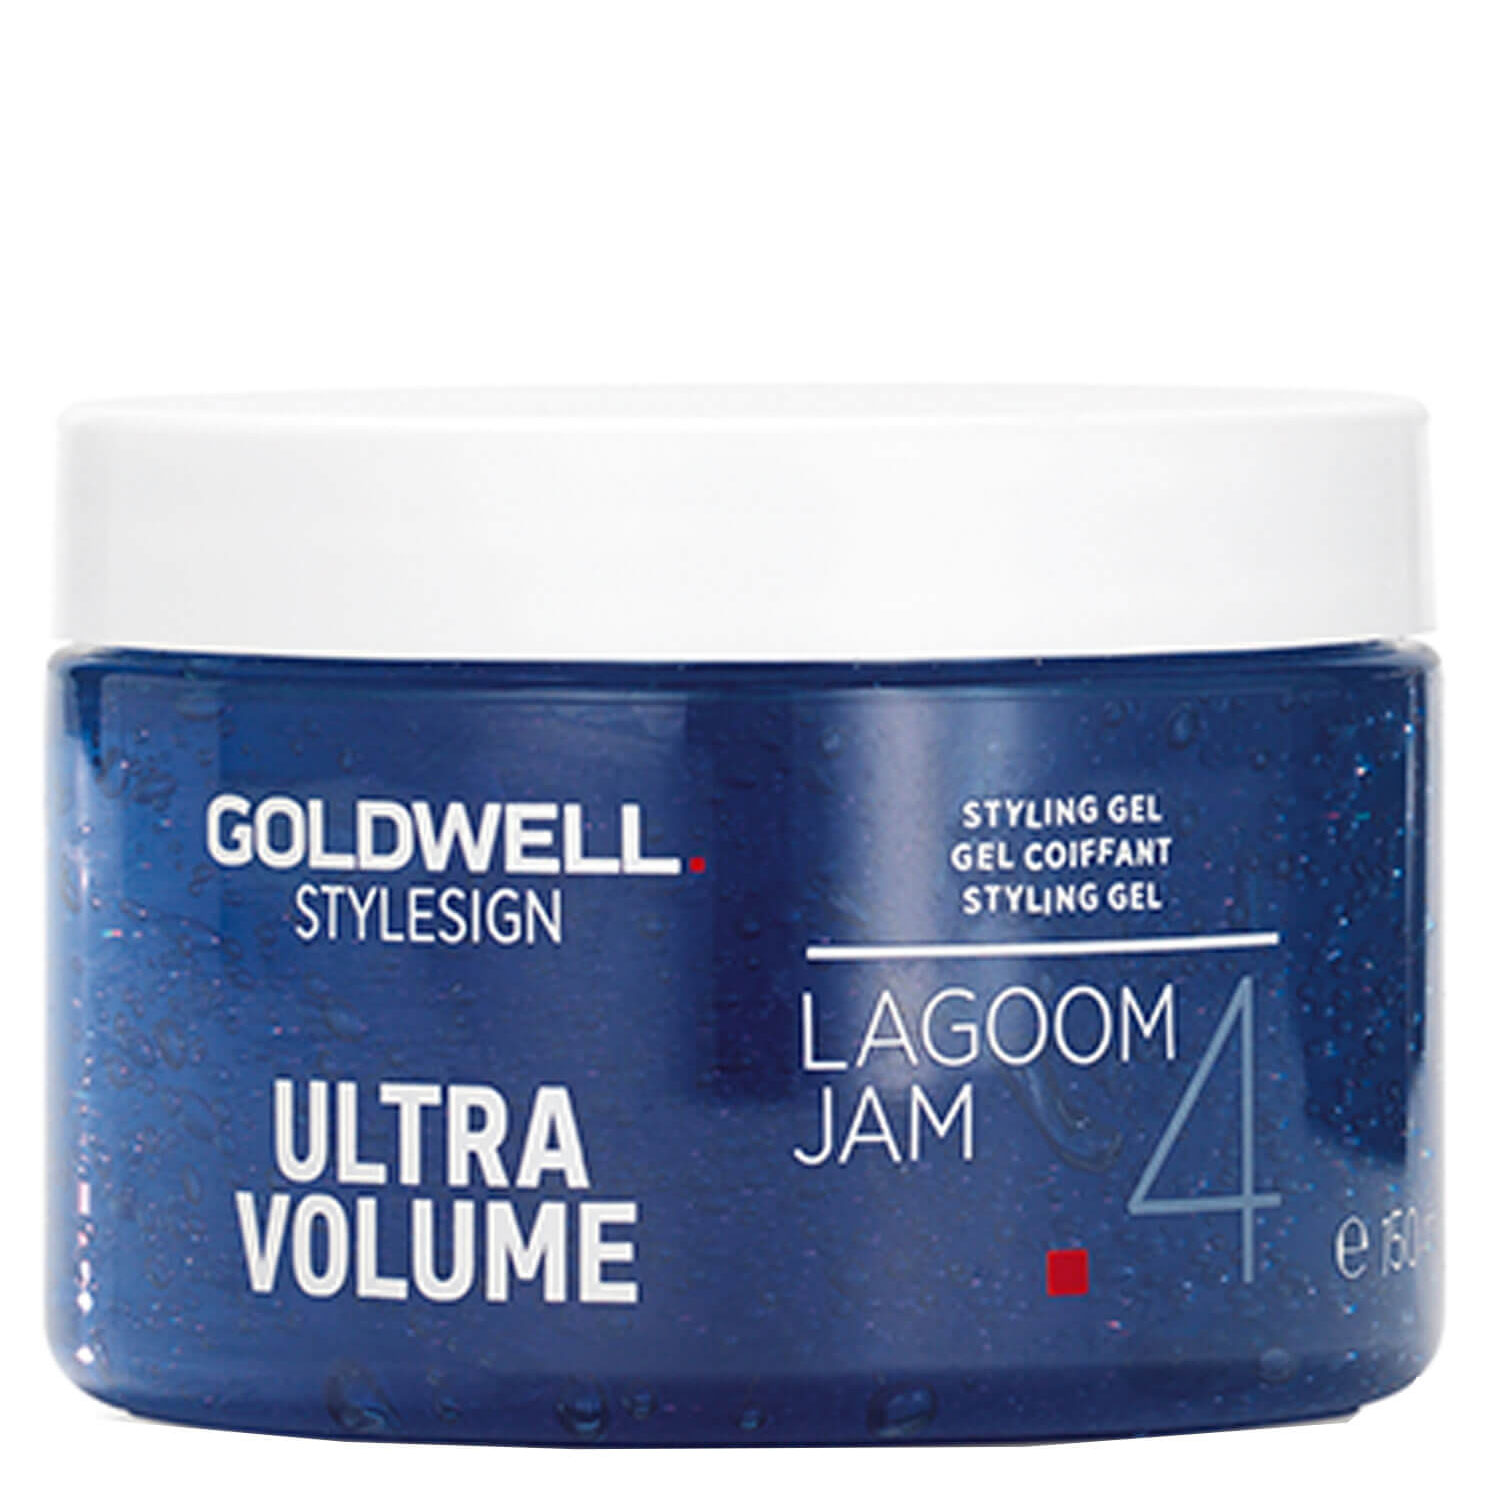 Ultra Volume Stylesign - Lagoom Jam - 150ml